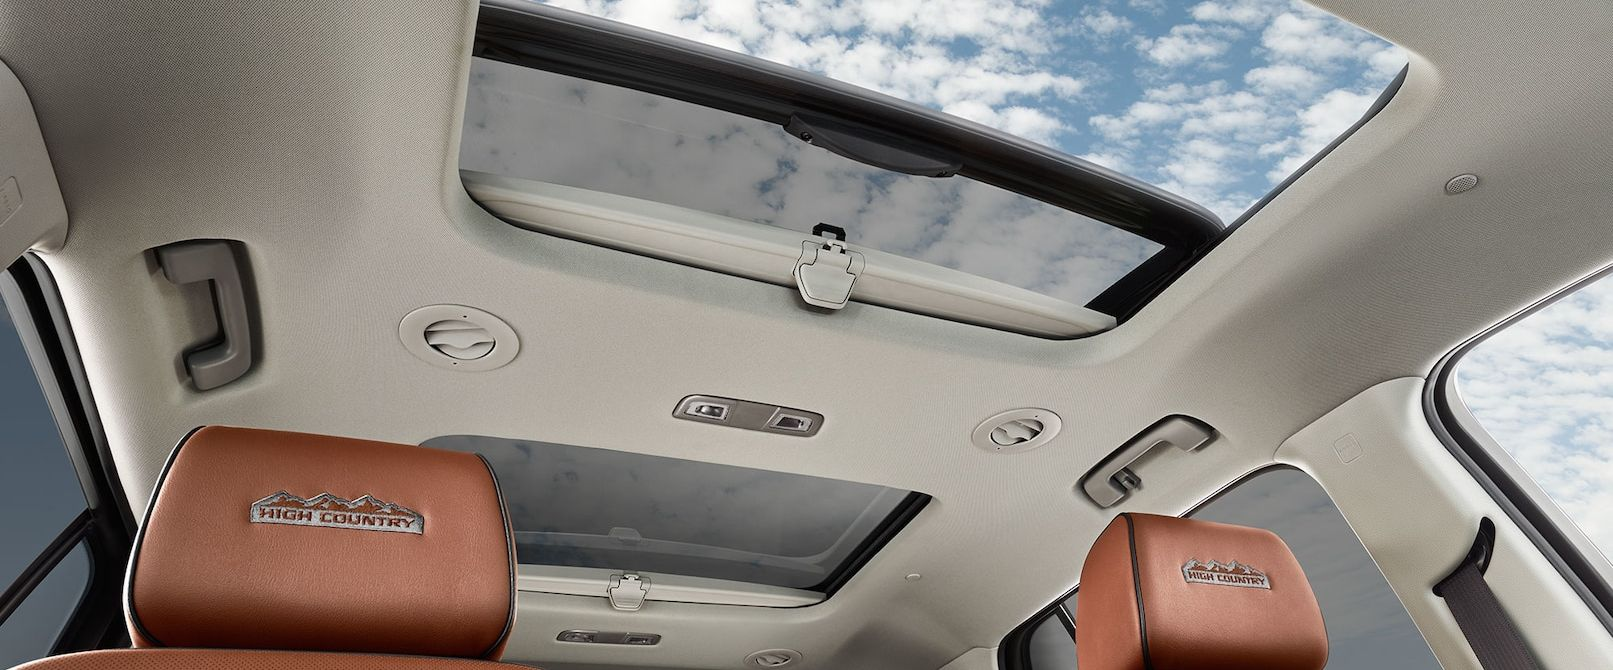 Enjoy the Drive in the 2018 Traverse!